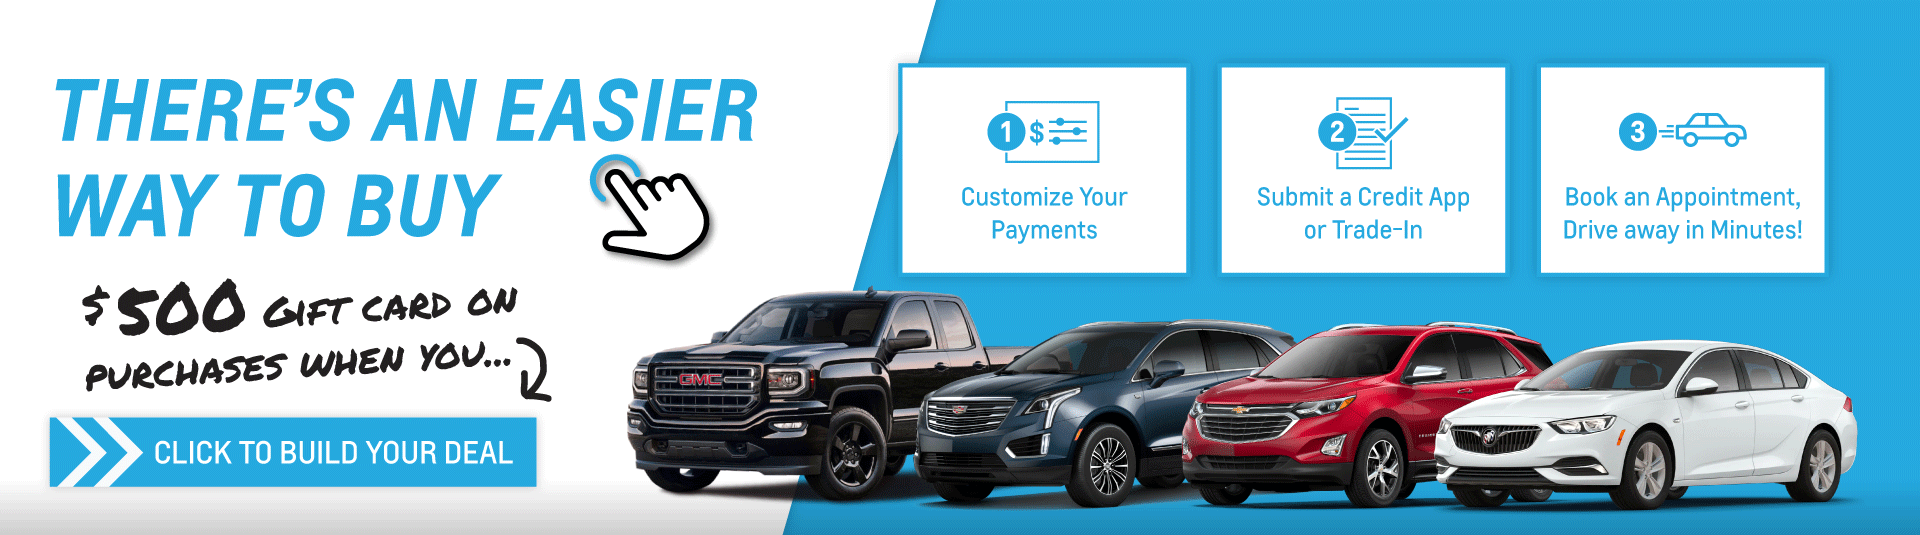 Humberview Chevrolet Buick GMC Online Shopping Tool & Get $500 Gift Card